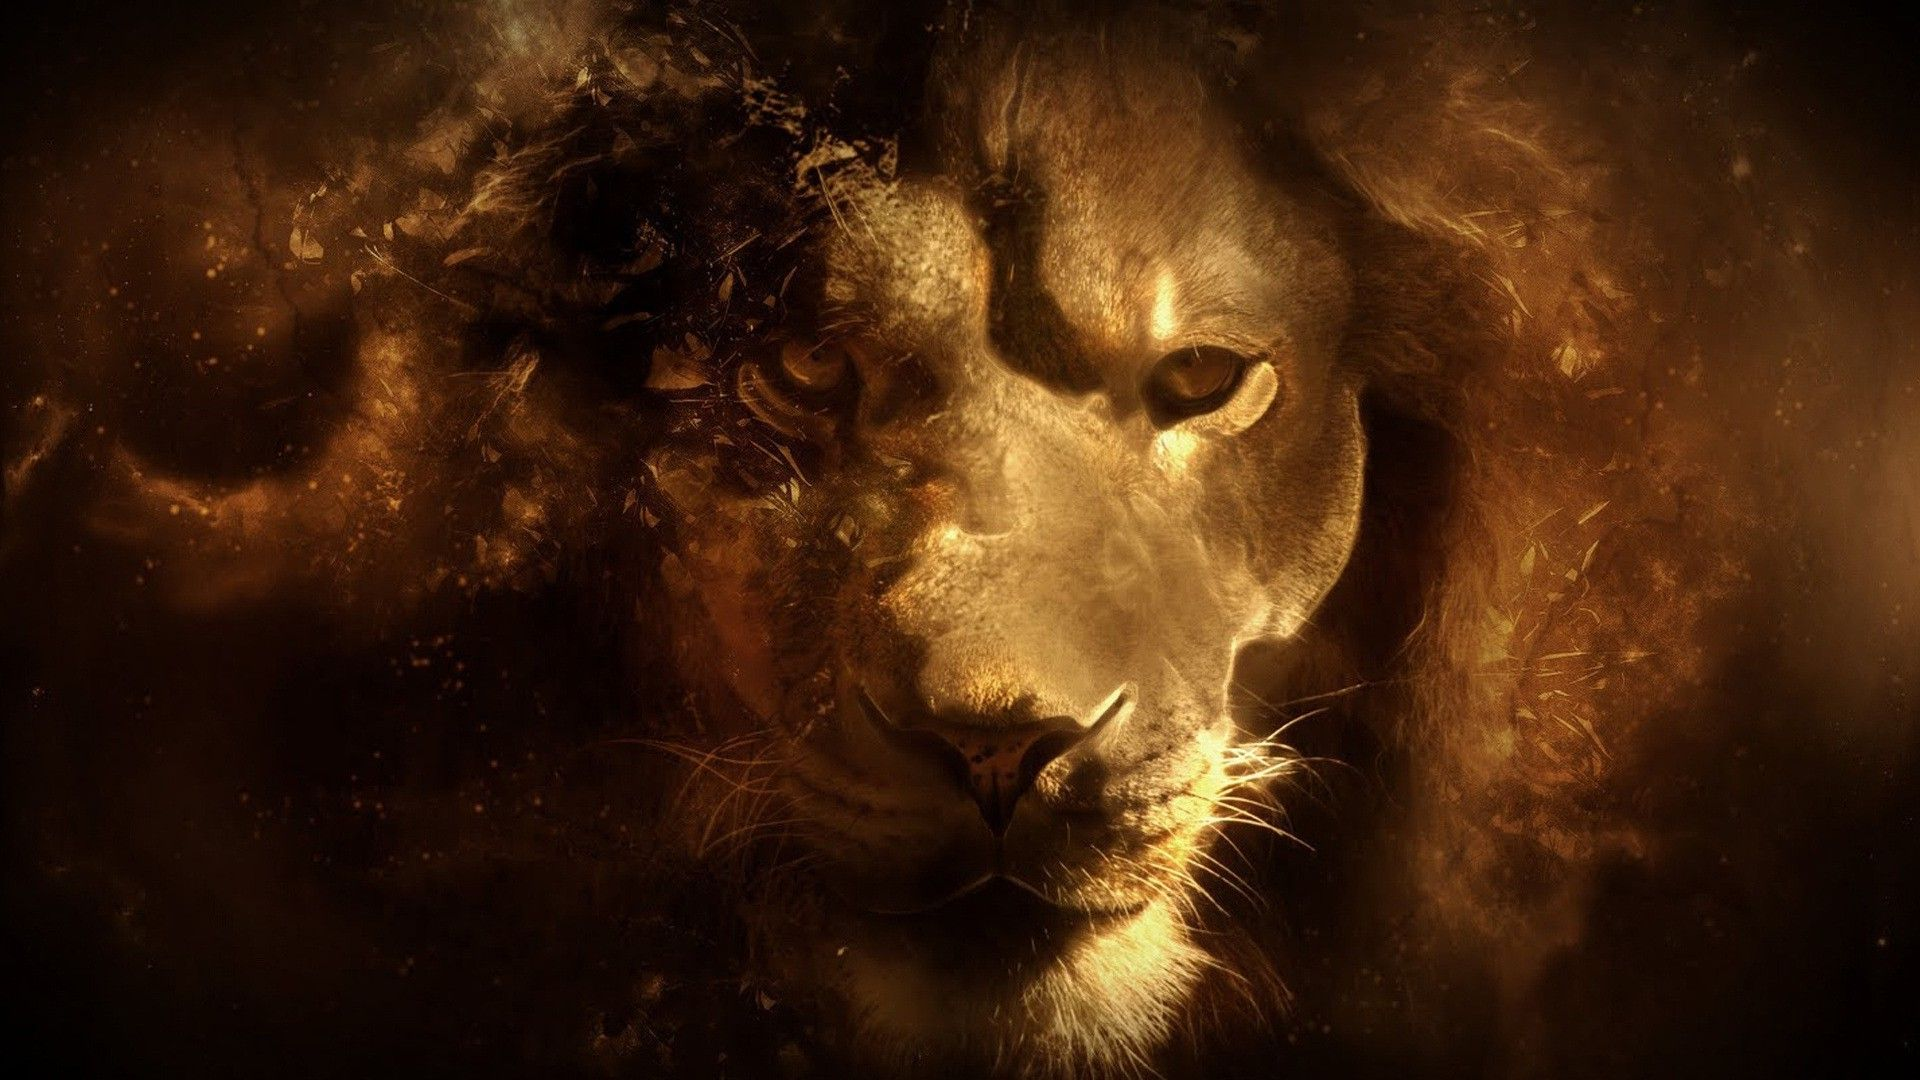 Lion Art wallpaper and themes